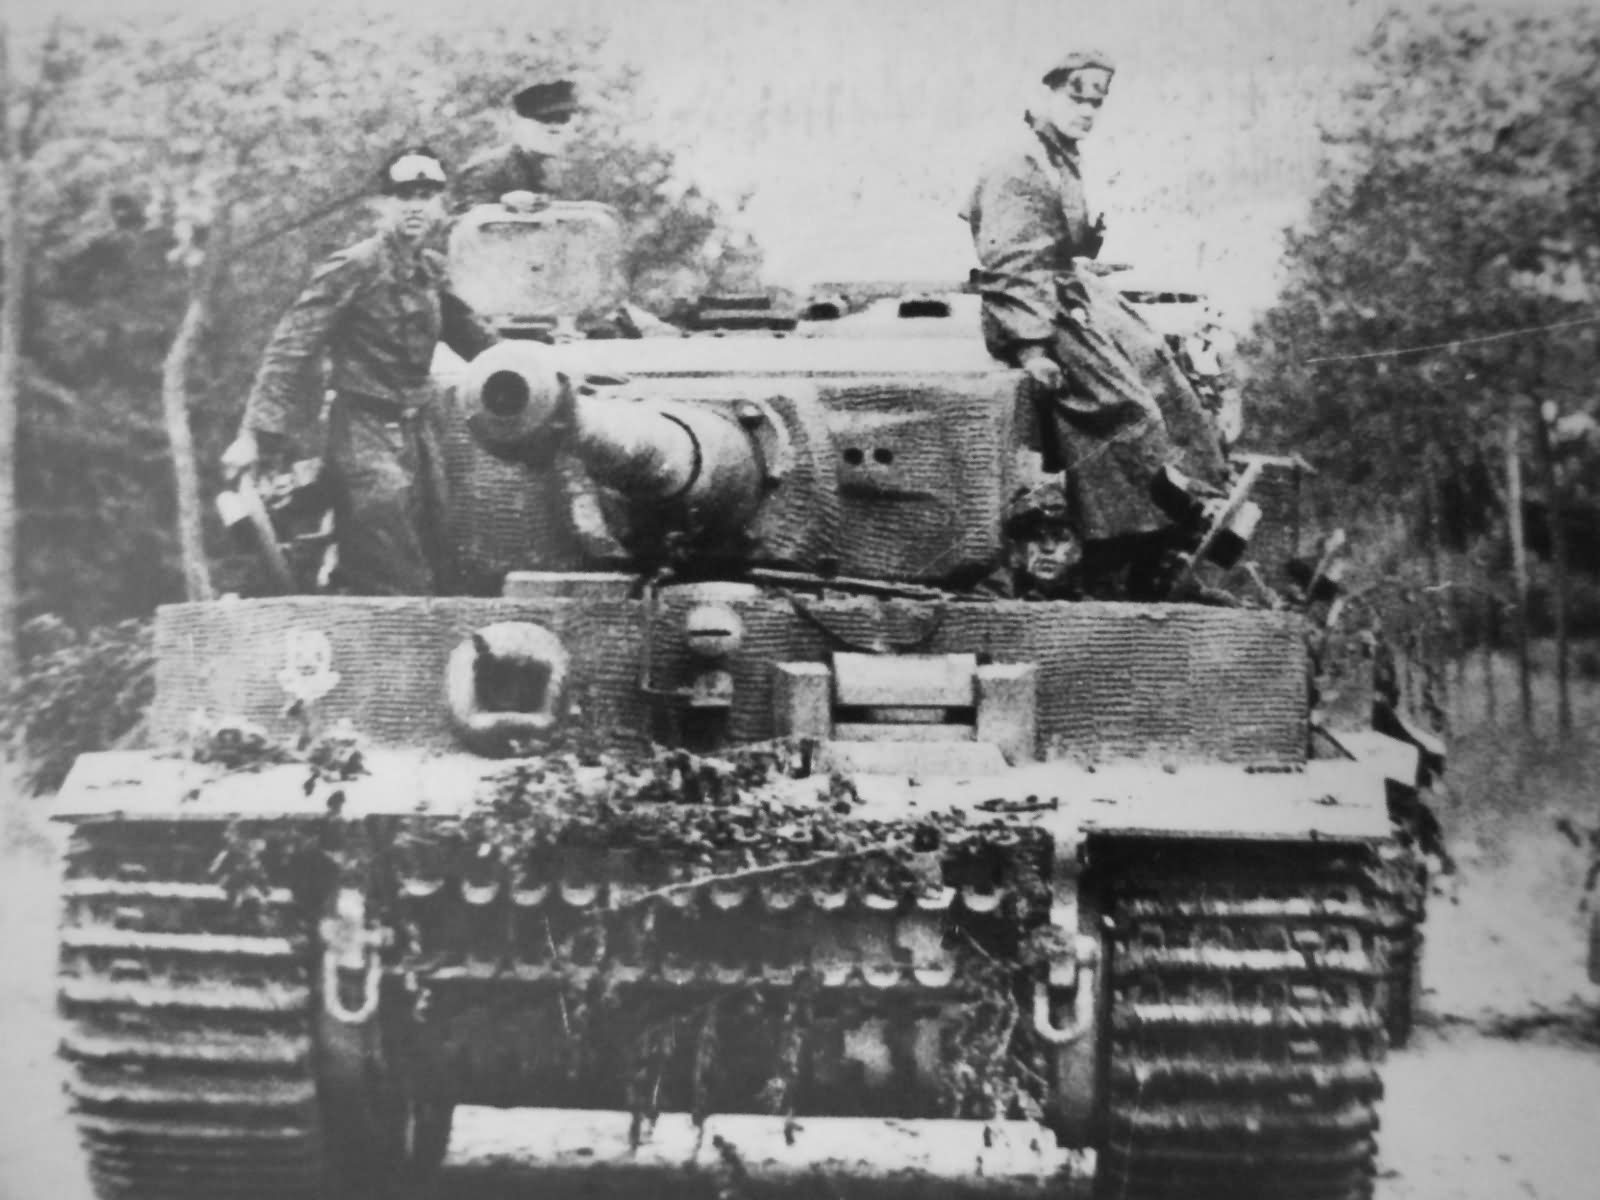 German Tiger I ausf E number 232 of the Schwere SS-Panzer Abteilung 101